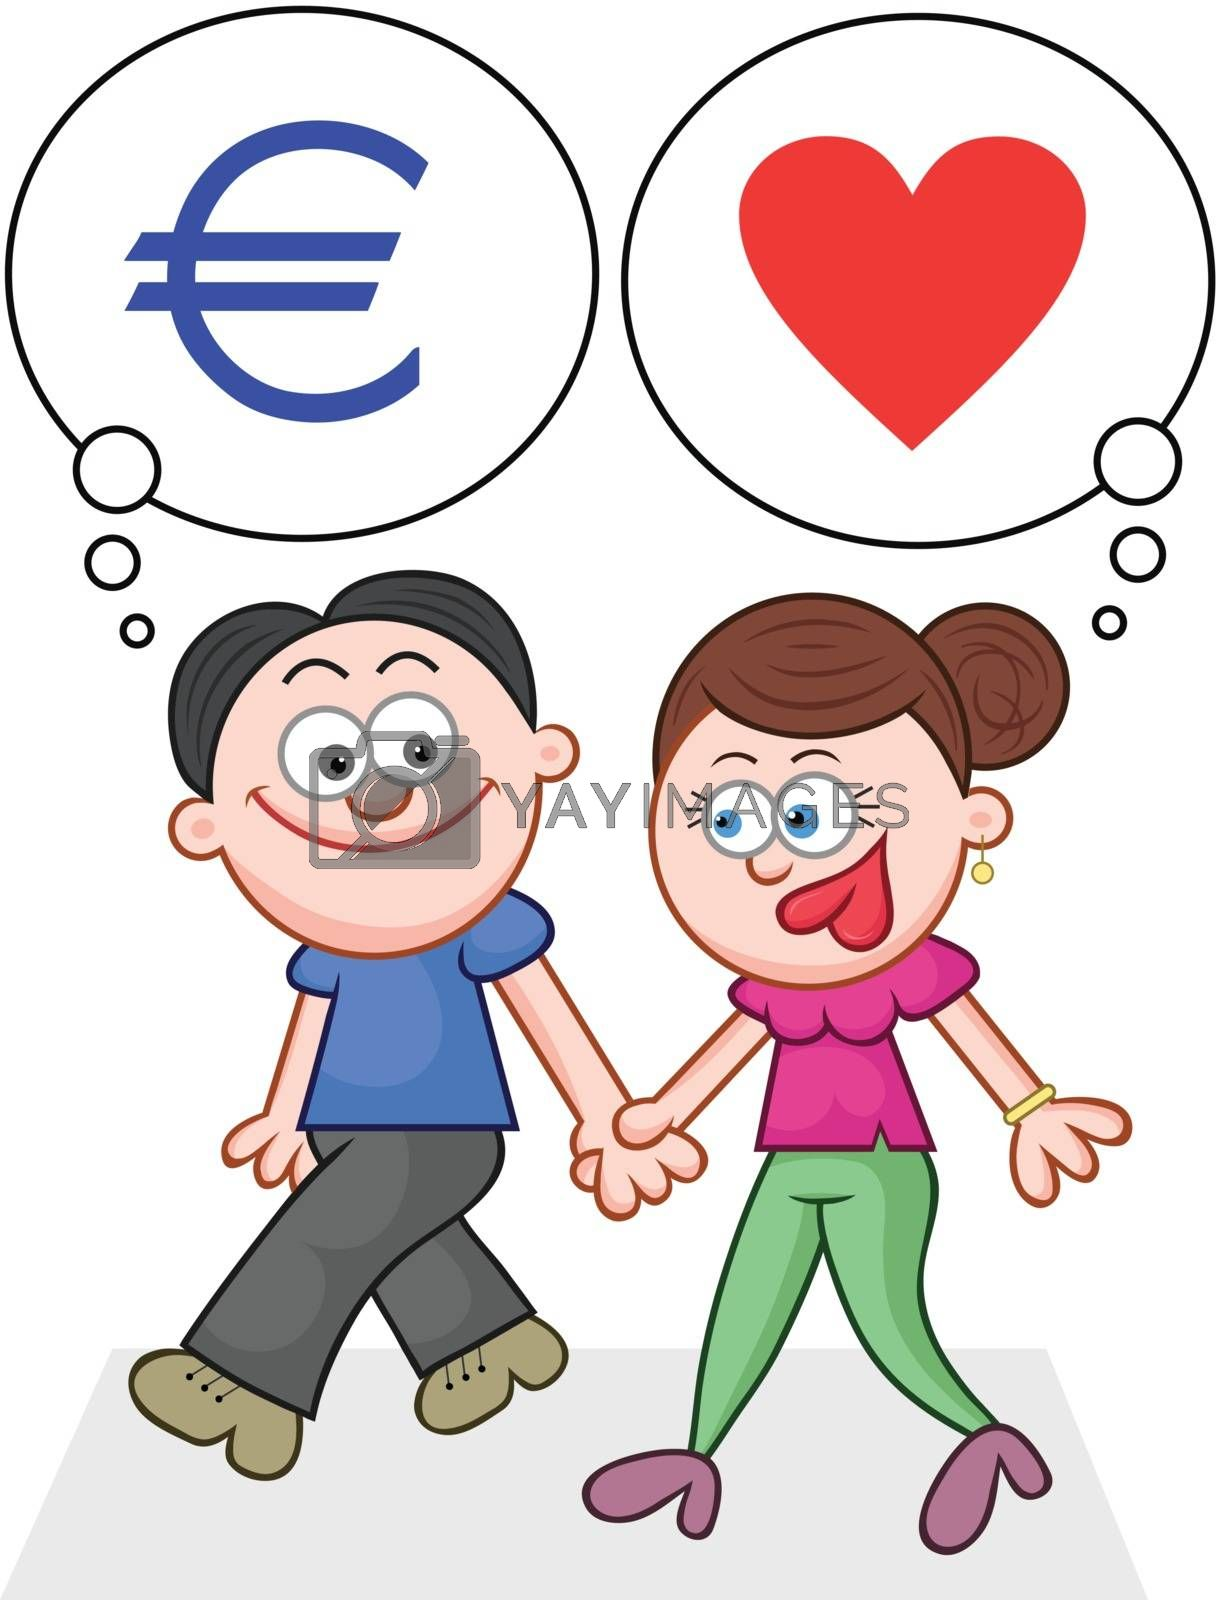 Cartoon couple holding hands and walking with love and money thoughts.